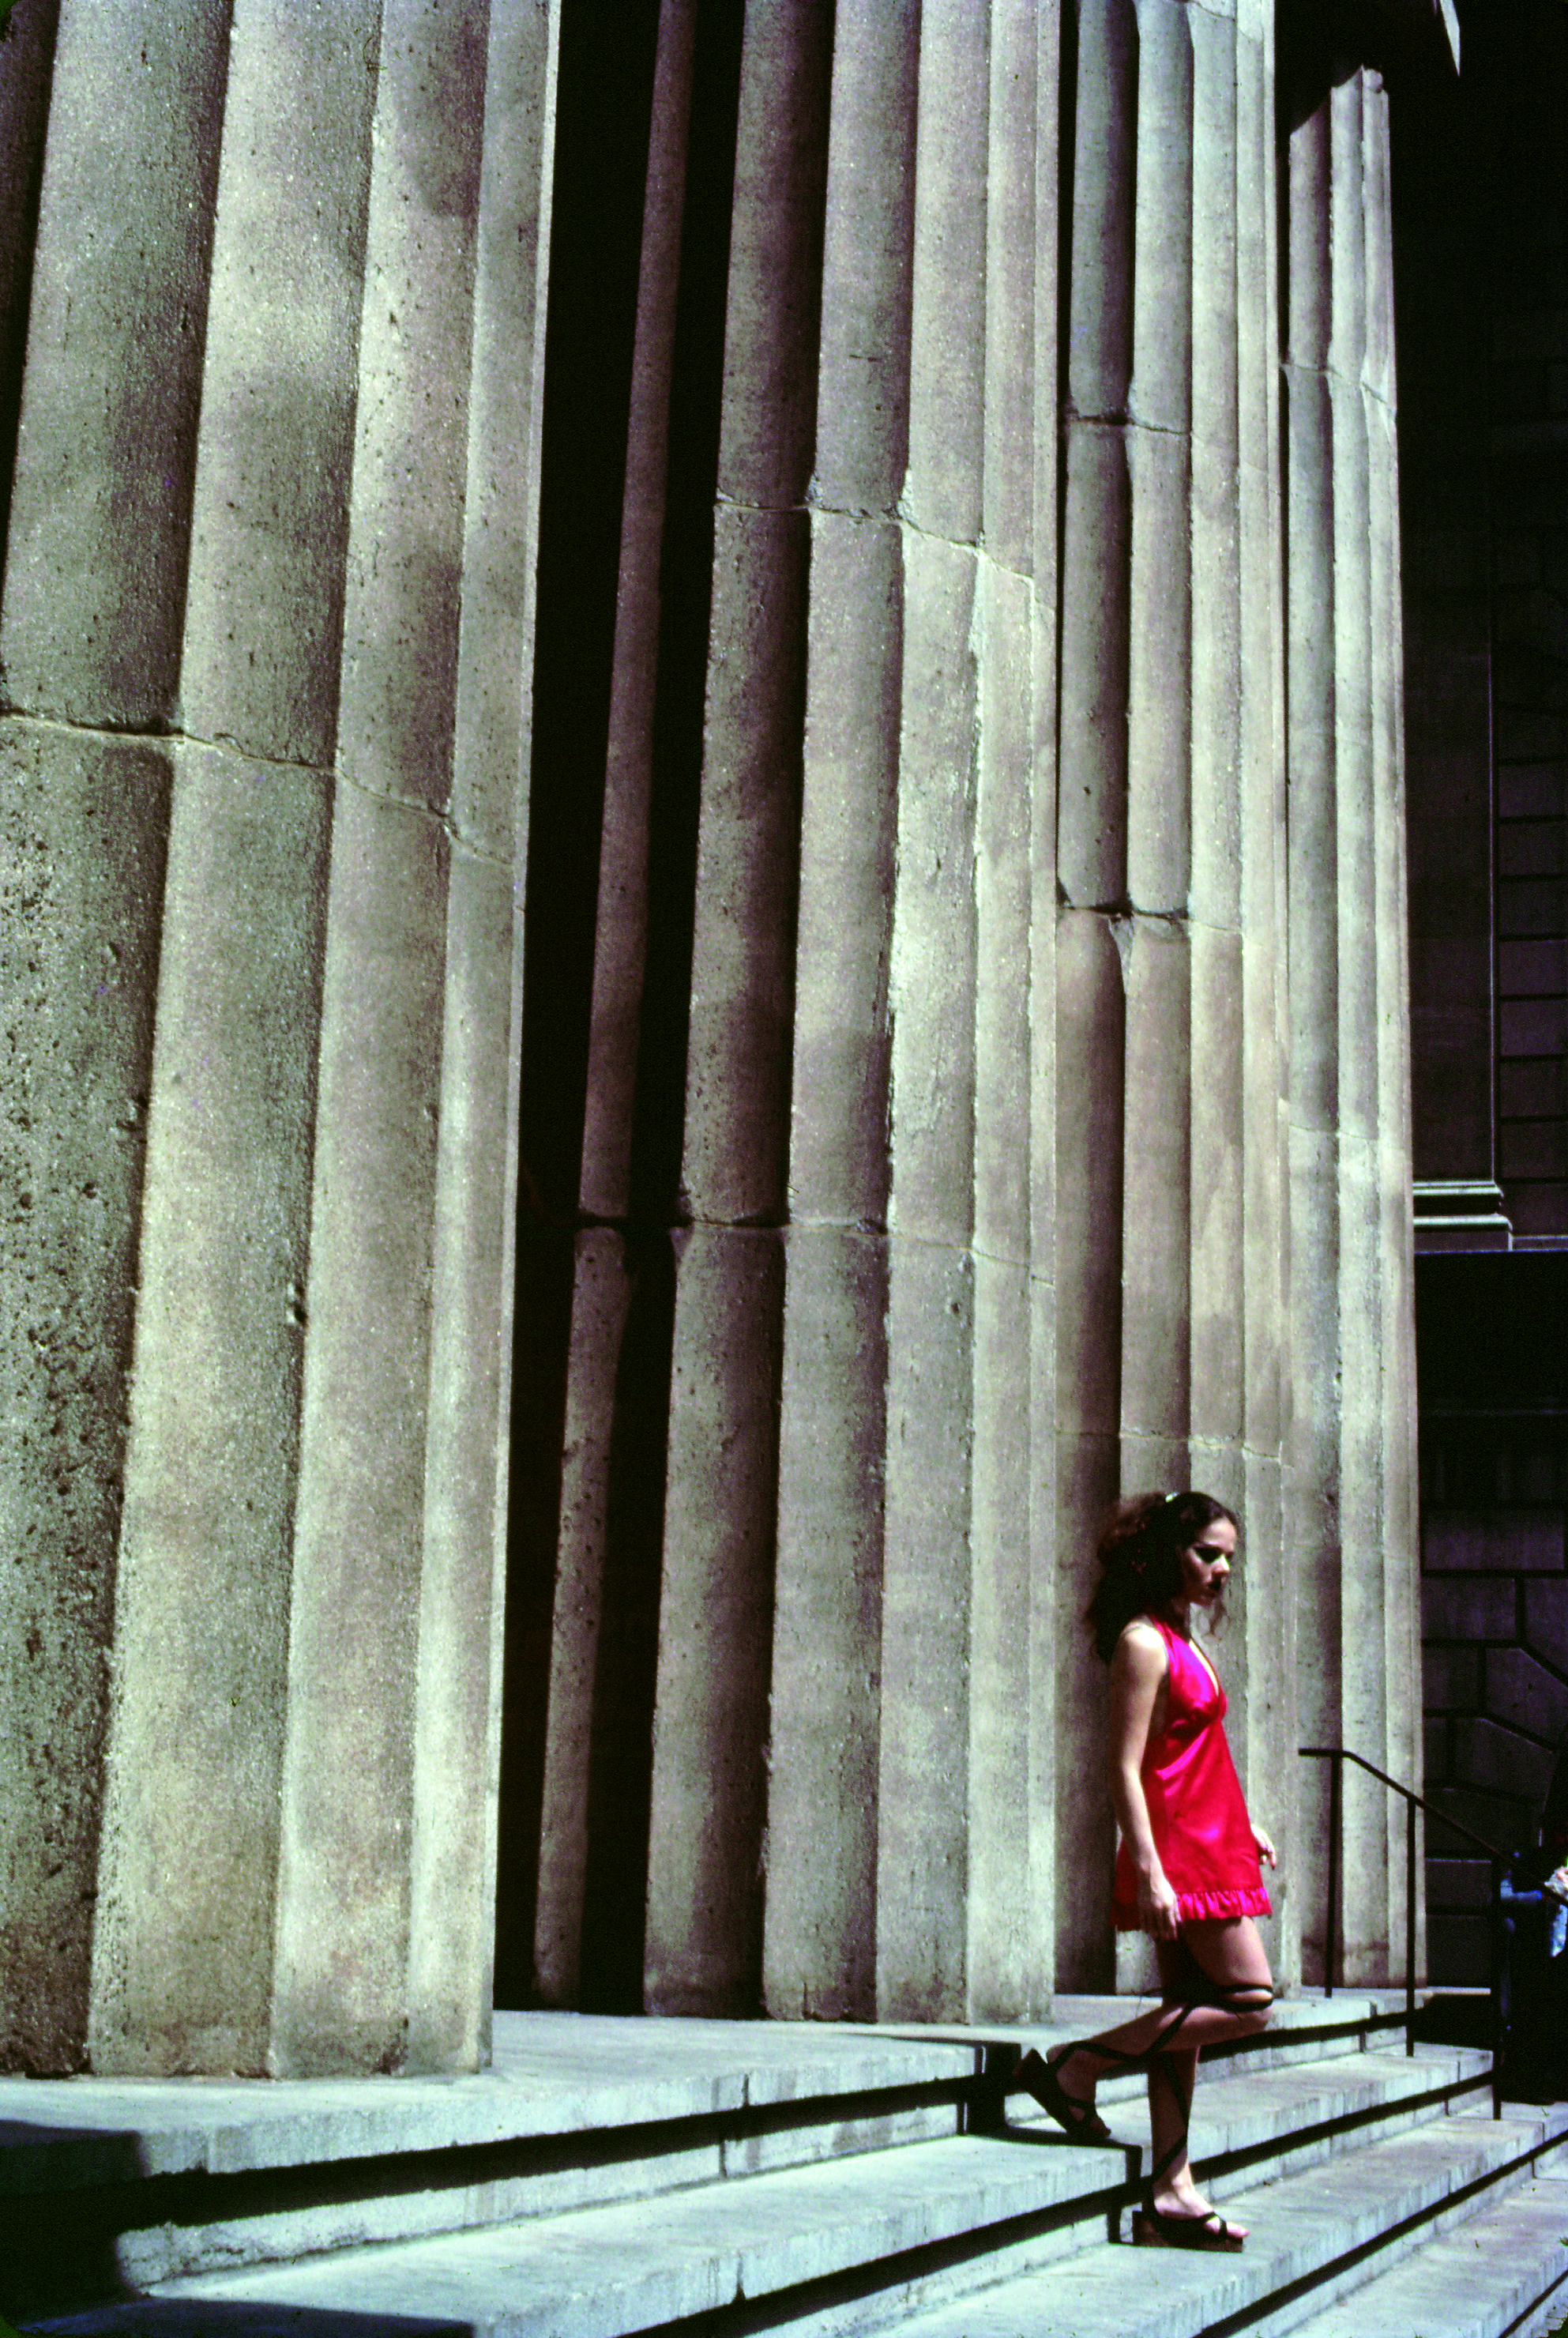 Hélio Oiticica, Agrippina é Roma-Manhattan, 1972. Courtesy of César Oiticica